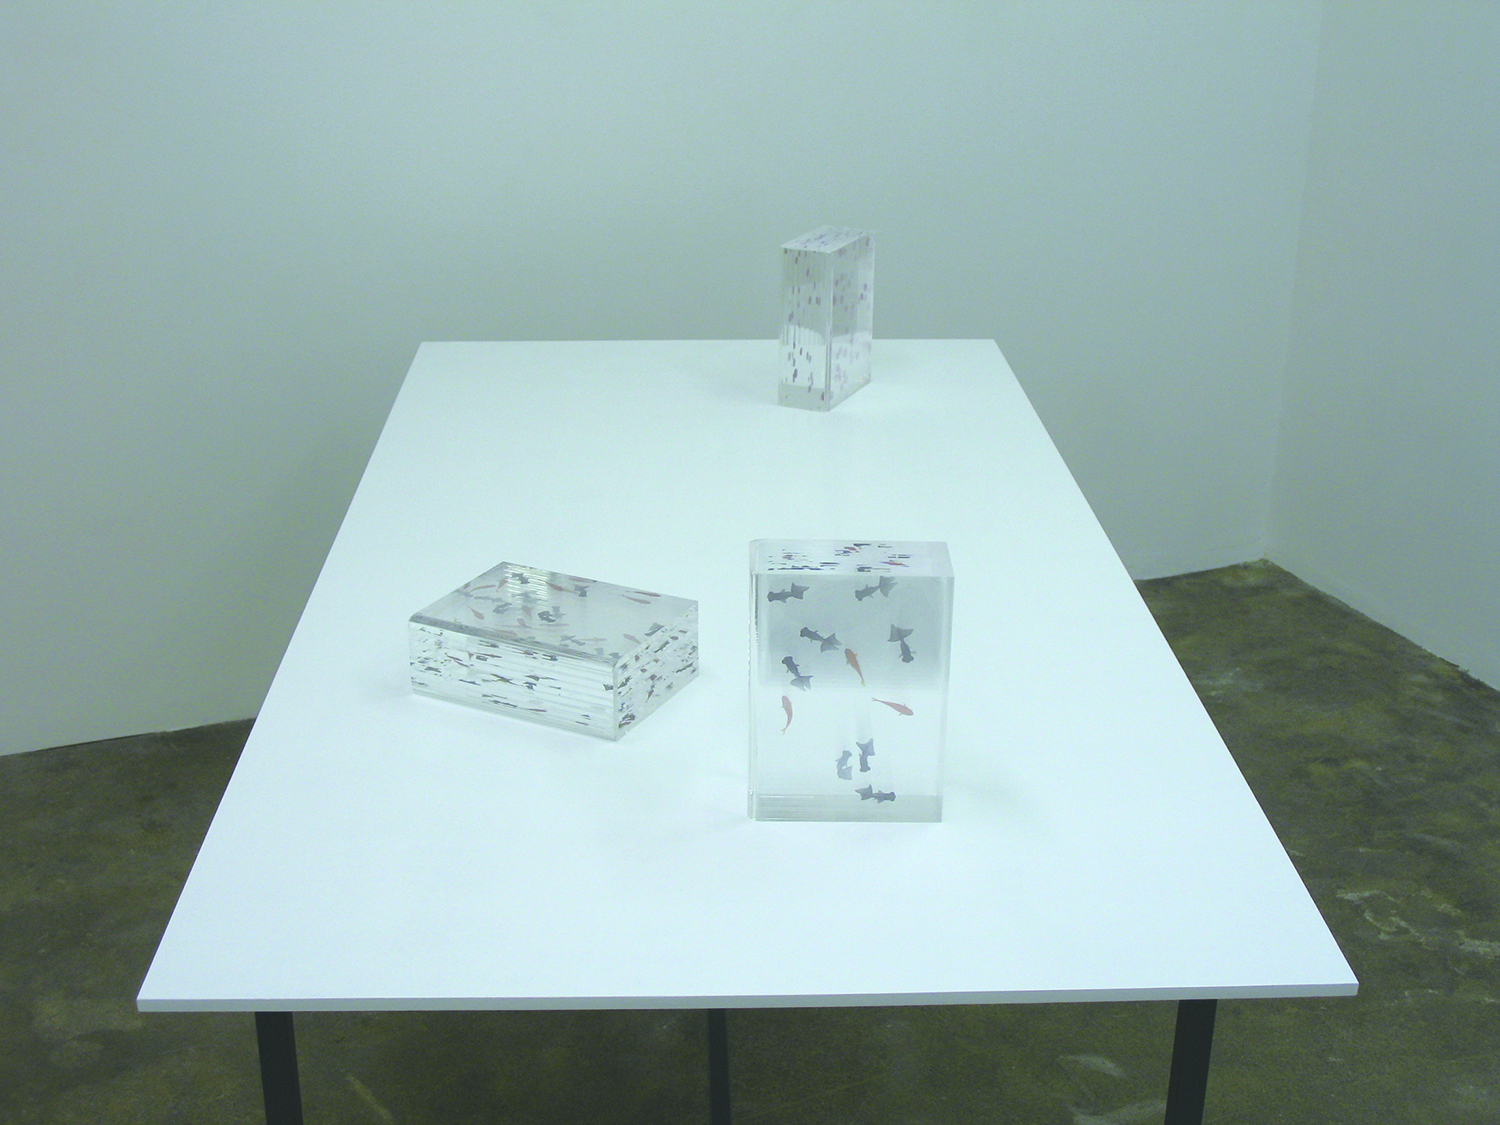 Installation View - Dictionary-born in April and gold fishes  acrylic and transfer seal  16.5 x 23 x 8 cm each  2008 each